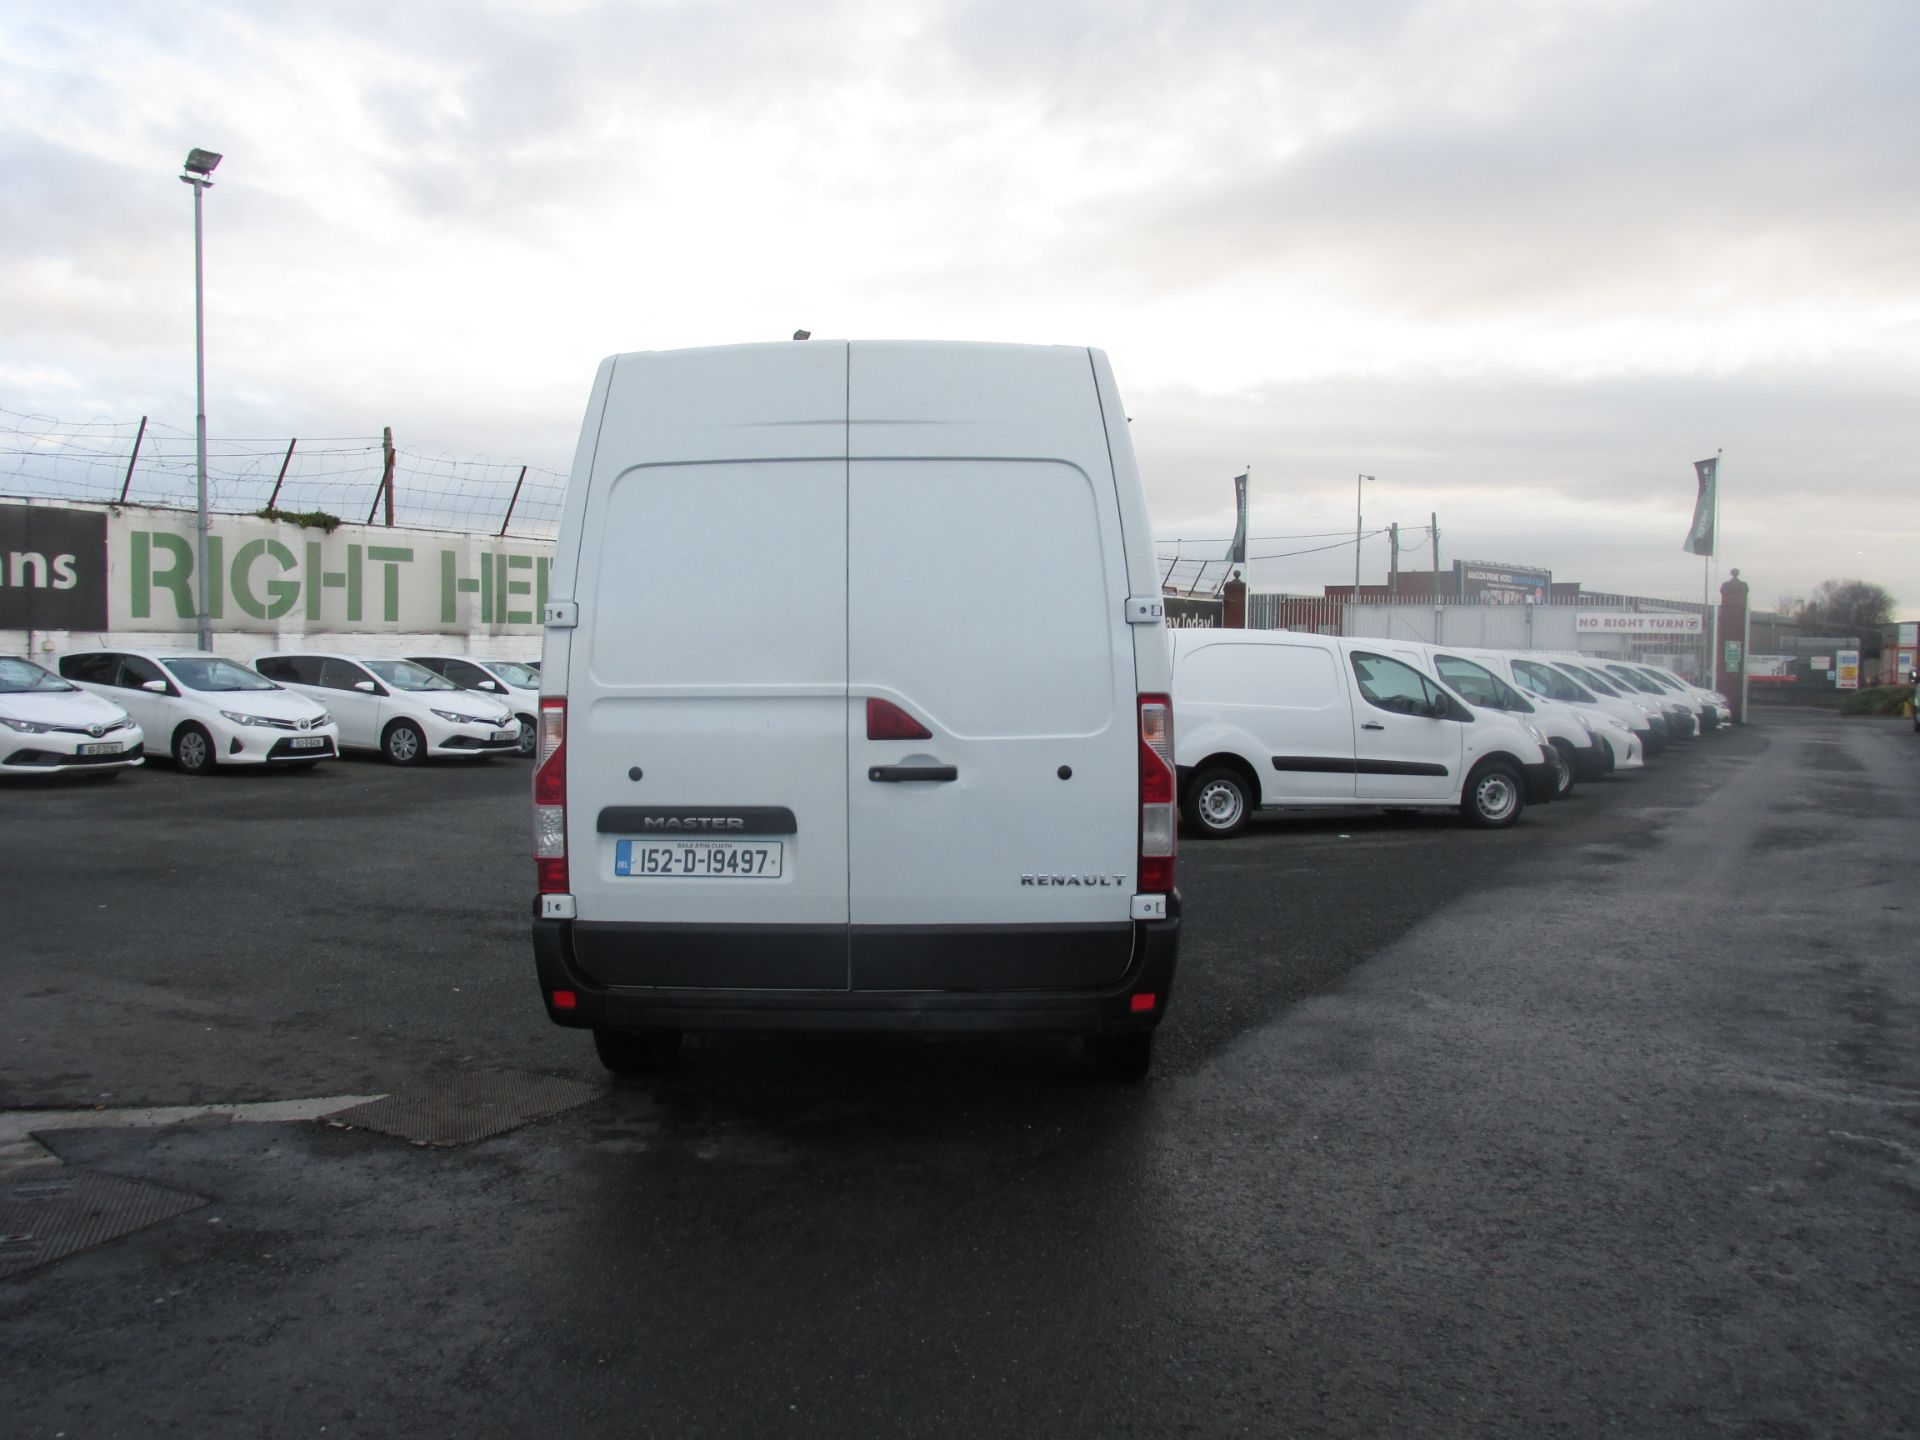 2015 Renault Master III FWD LM35 DCI 125 Business 3DR (152D19497) Image 4